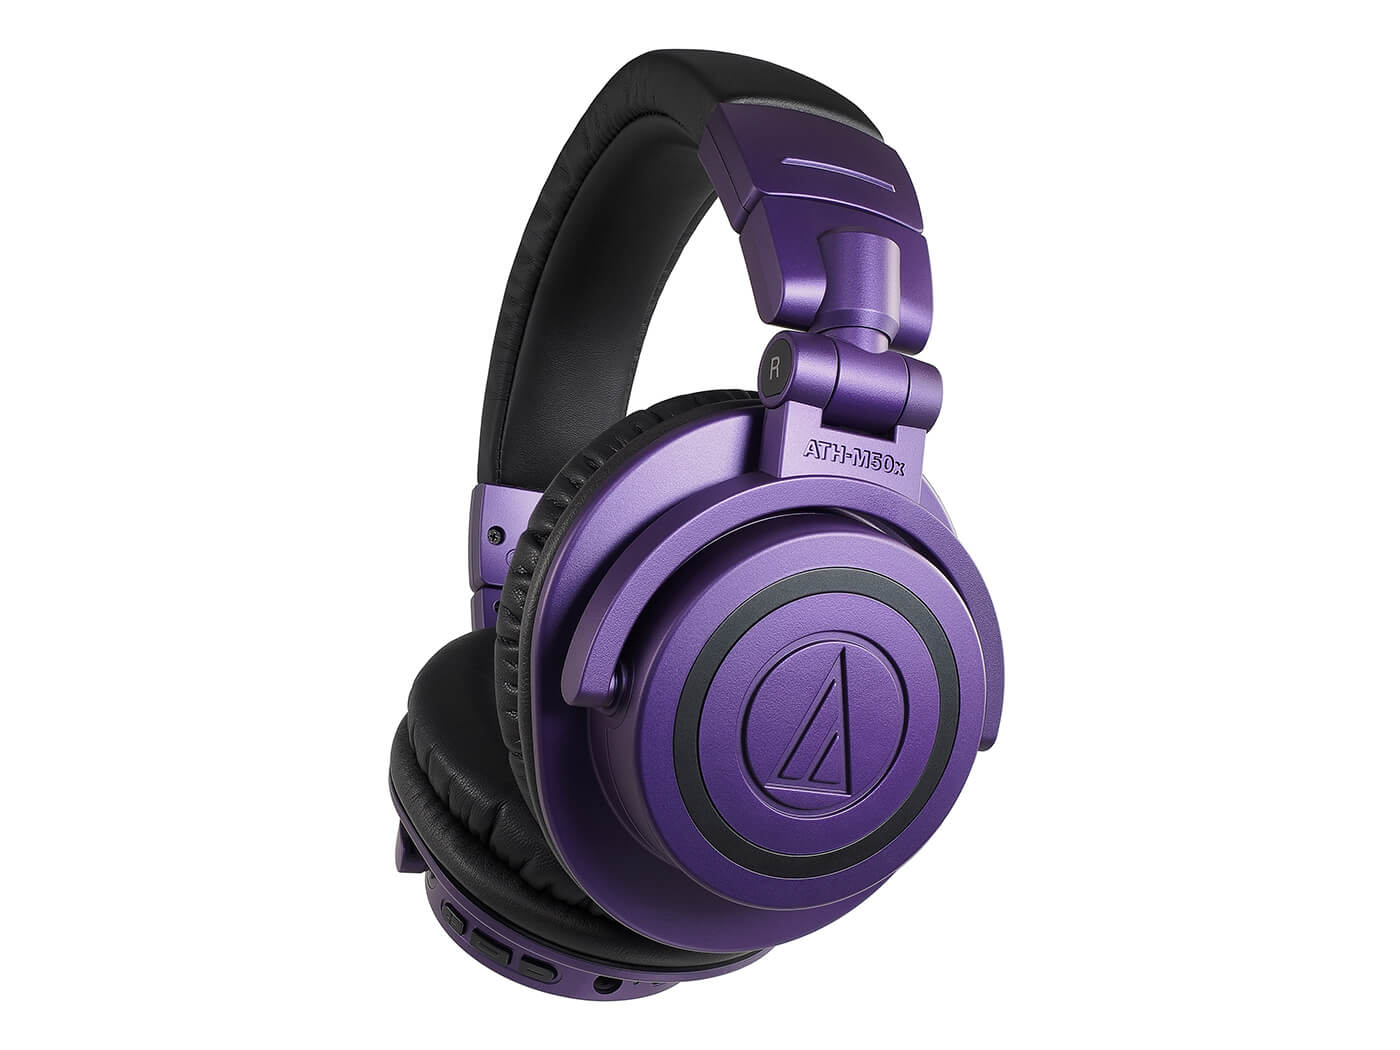 ATH-M50x and ATH-M50xBT